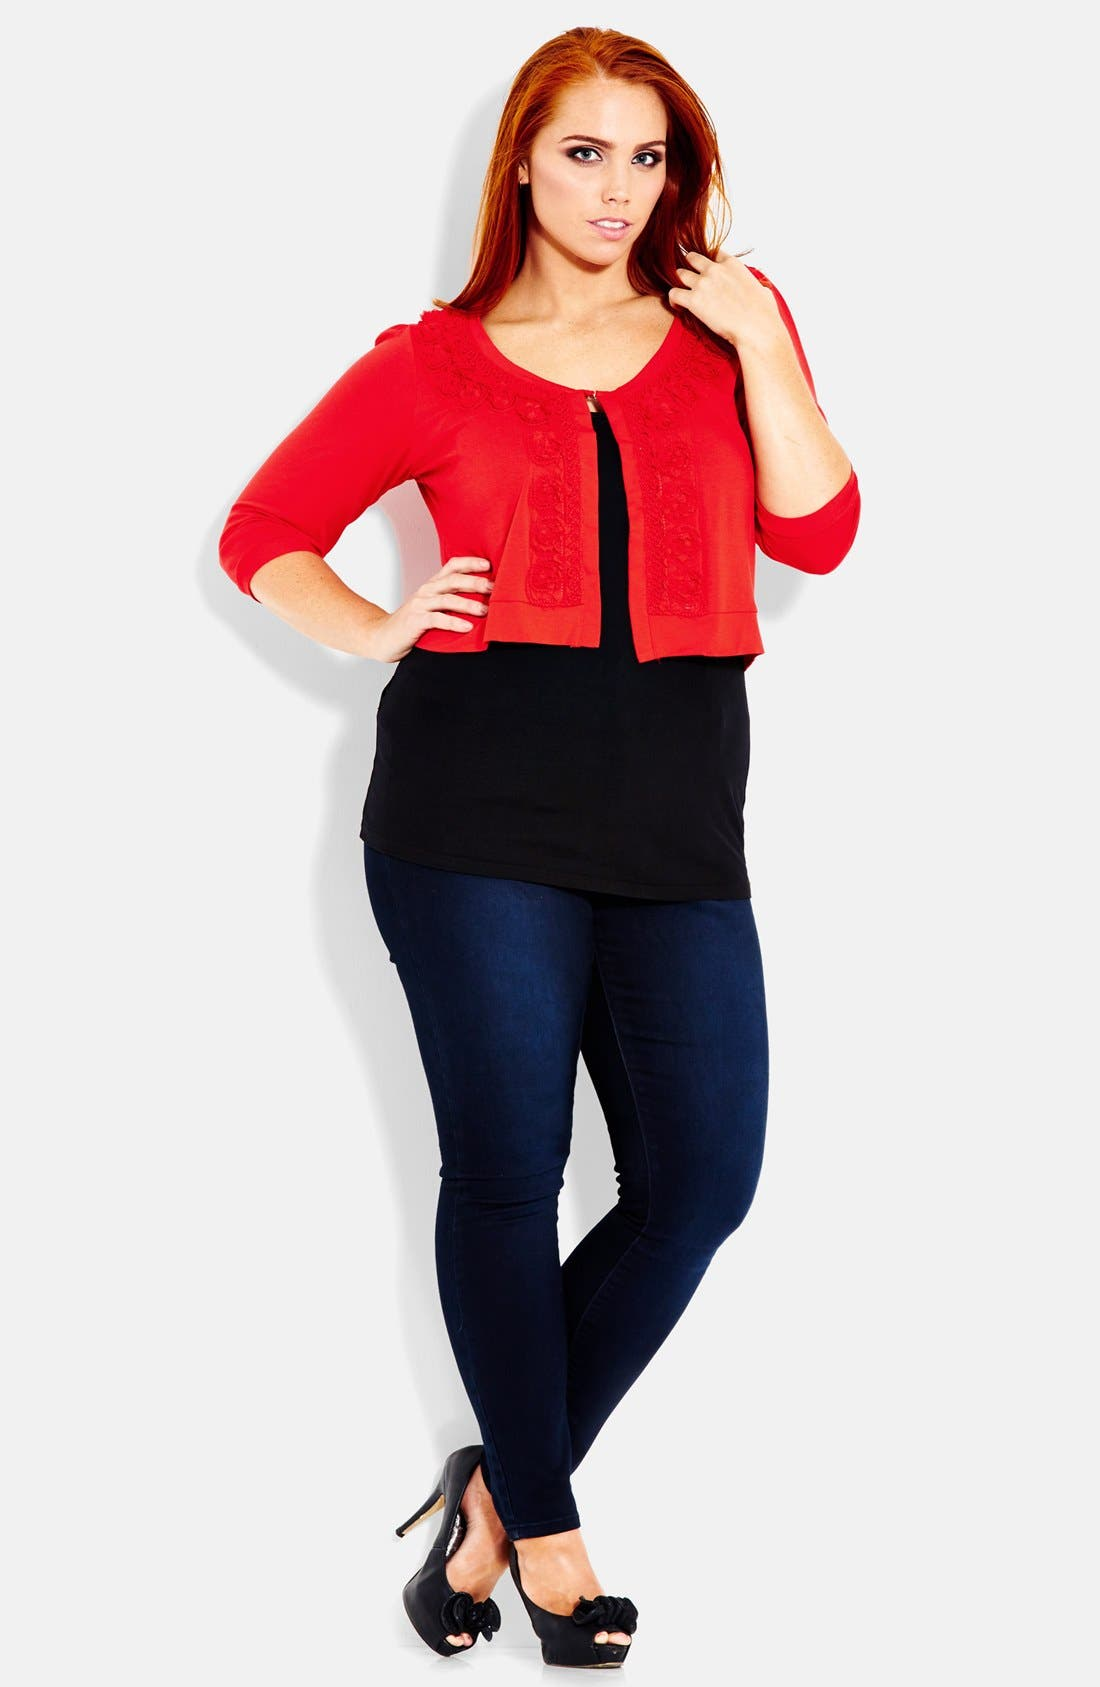 Alternate Image 1 Selected - City Chic 'Fancy' Cropped Knit Cardigan (Plus Size)